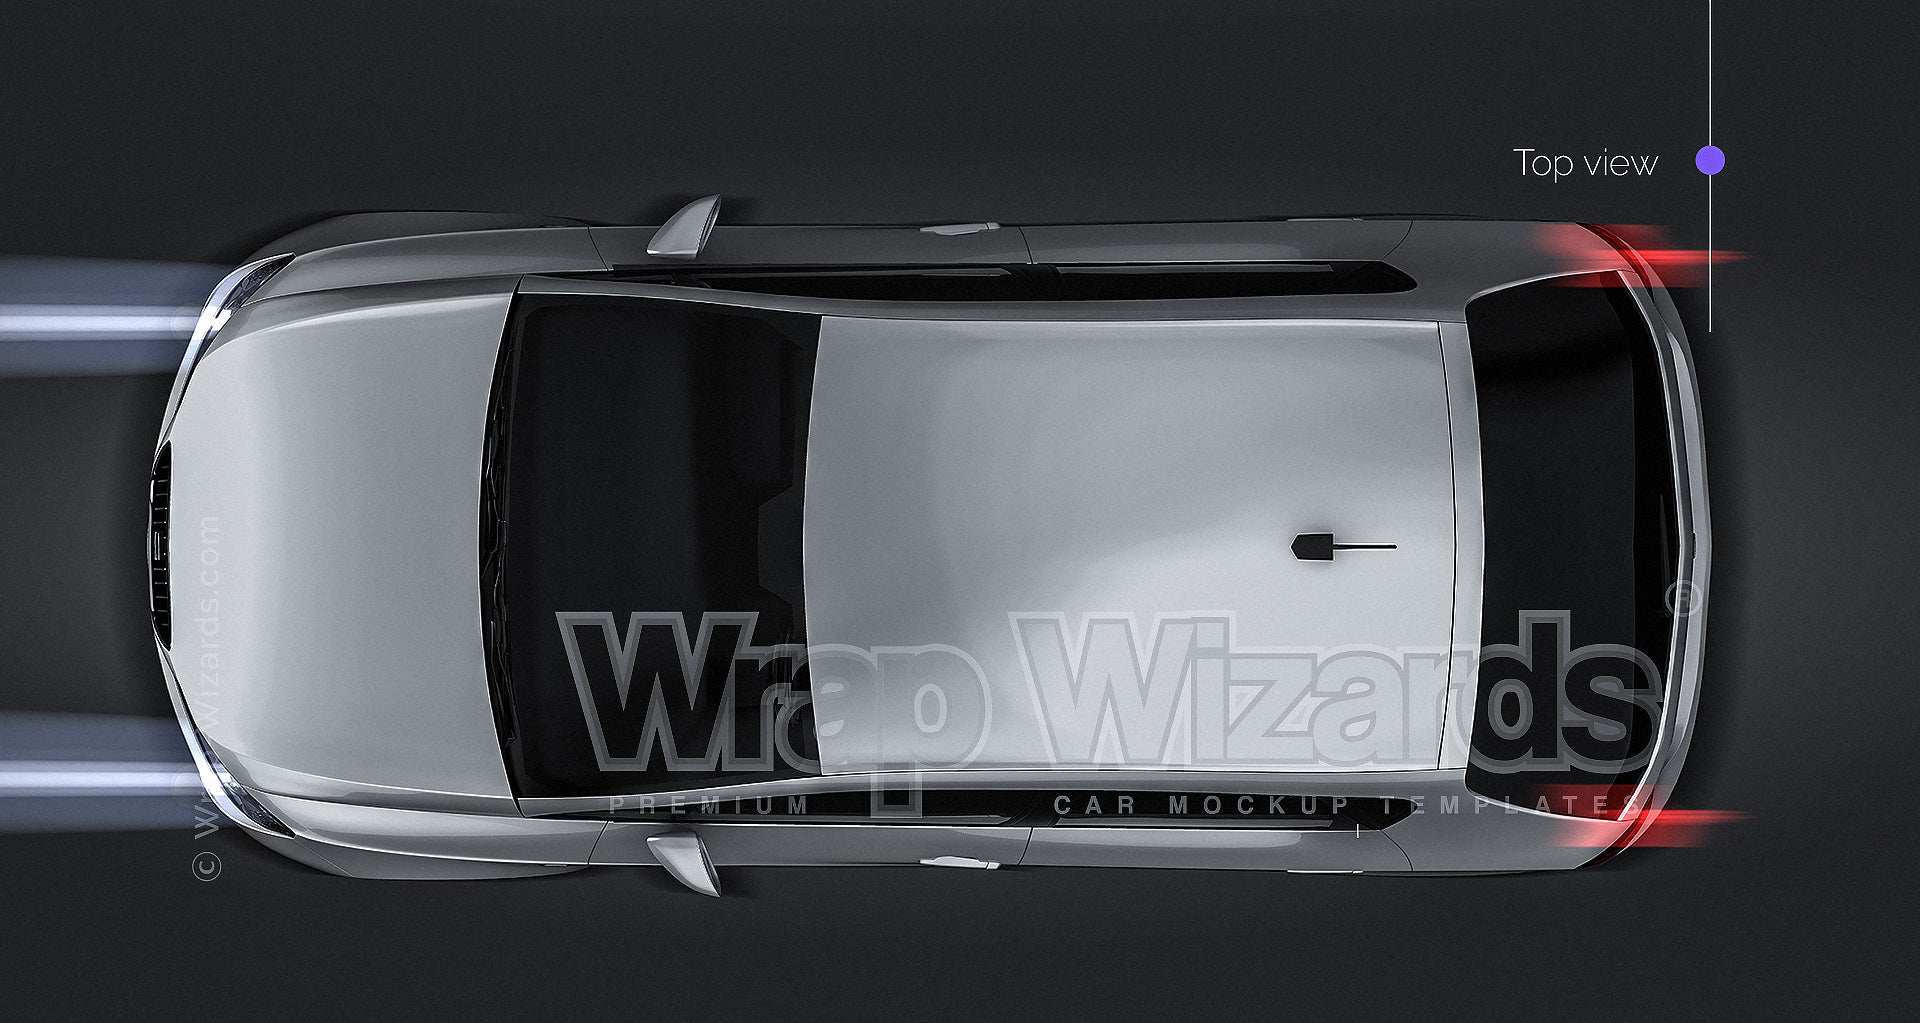 SEAT IBIZA IV 4 door - 2008 all sides Car Mockup Digital Template.psd